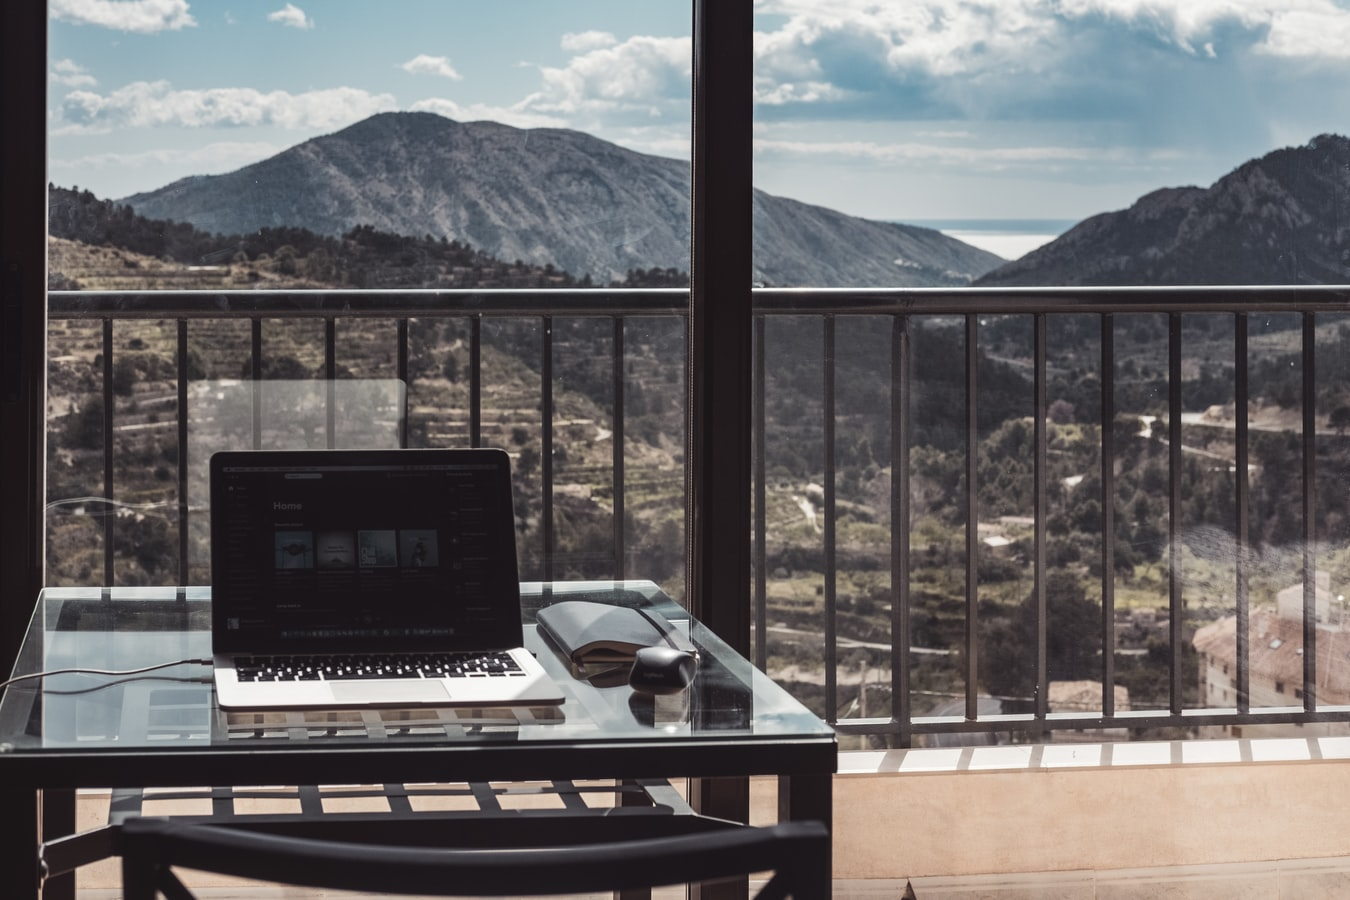 The Do's and Don'ts for Remote Workers